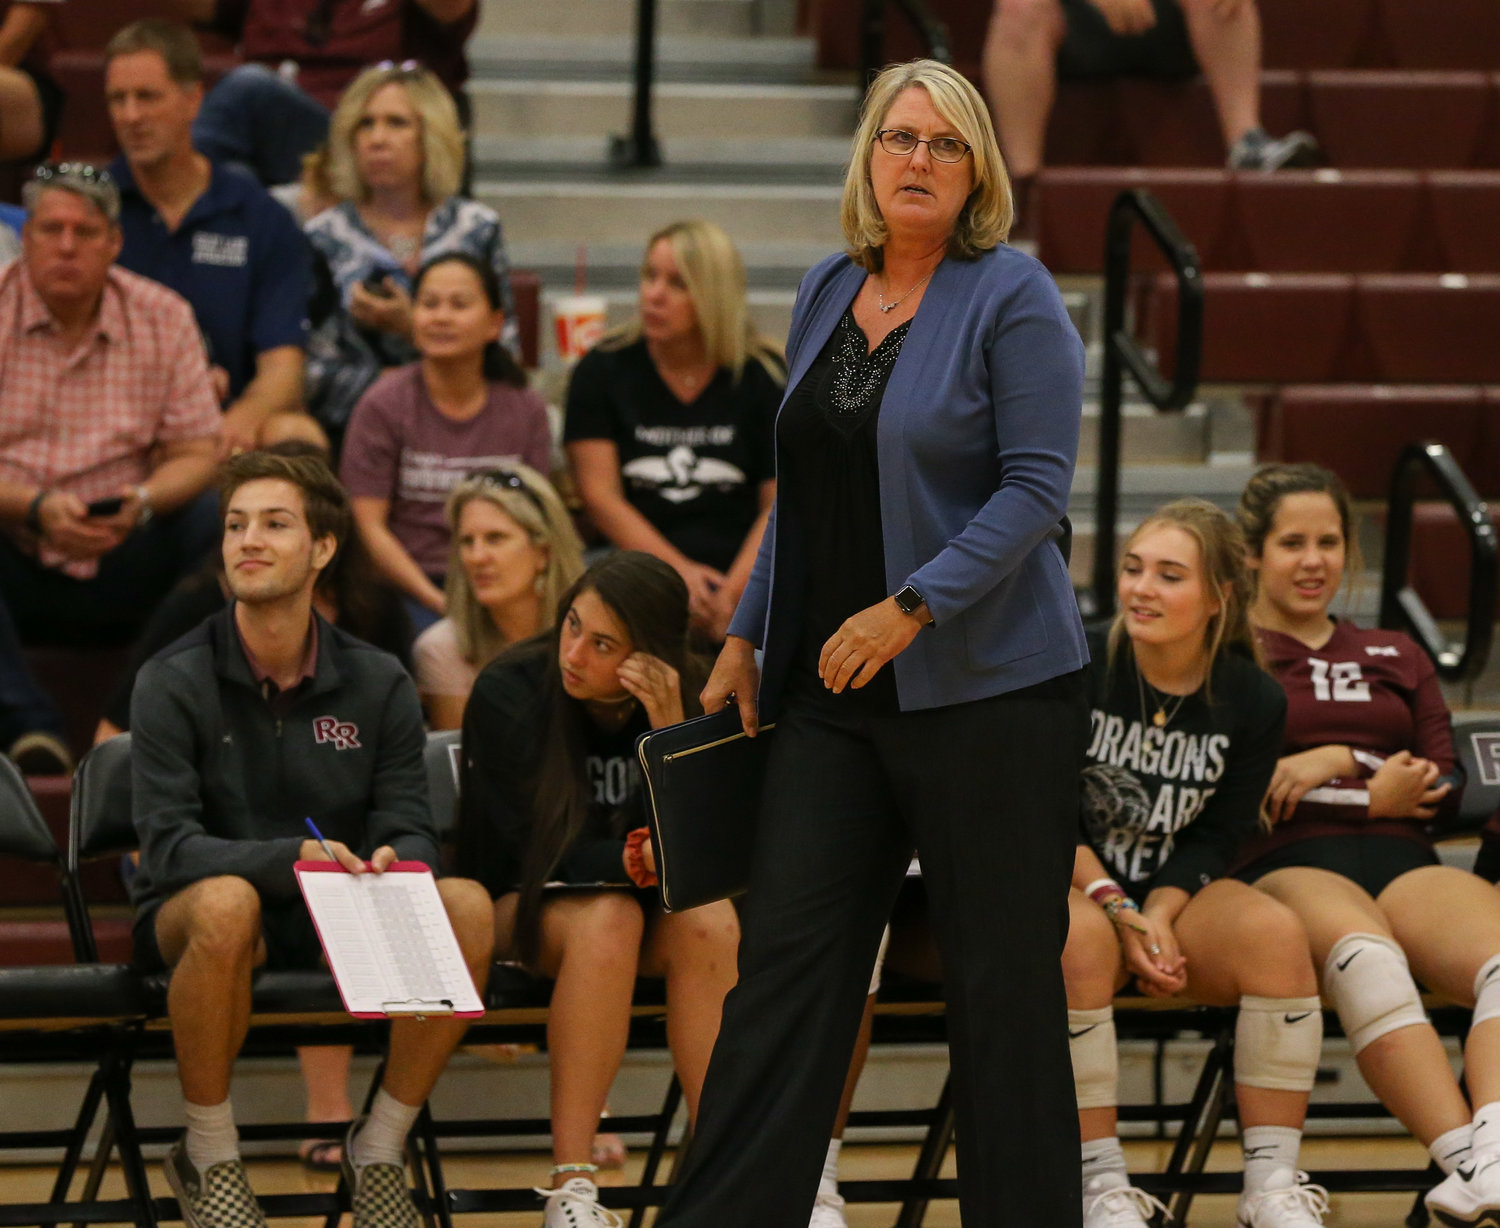 Round Rock Dragons head coach Diane Watson during a high school volleyball match between Round Rock and the Vandegrift at Round Rock High School in Round Rock, Texas on September 3, 2019.